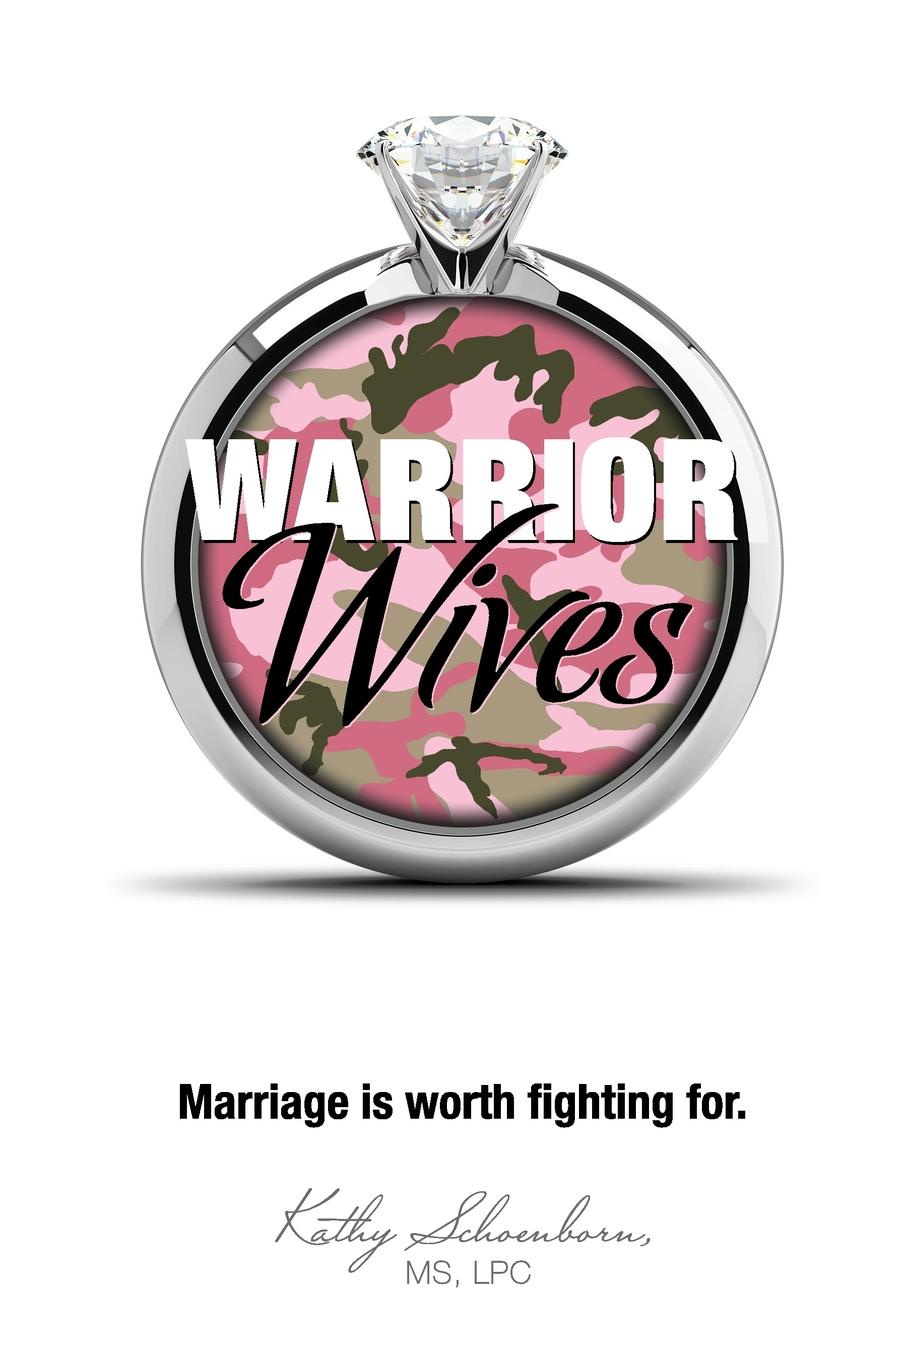 MS Lpc Kathy Schoenborn, Kathy Schoenborn Warrior Wives. Marriage Is Worth Fighting for daniel trathen a lasting promise the christian guide to fighting for your marriage